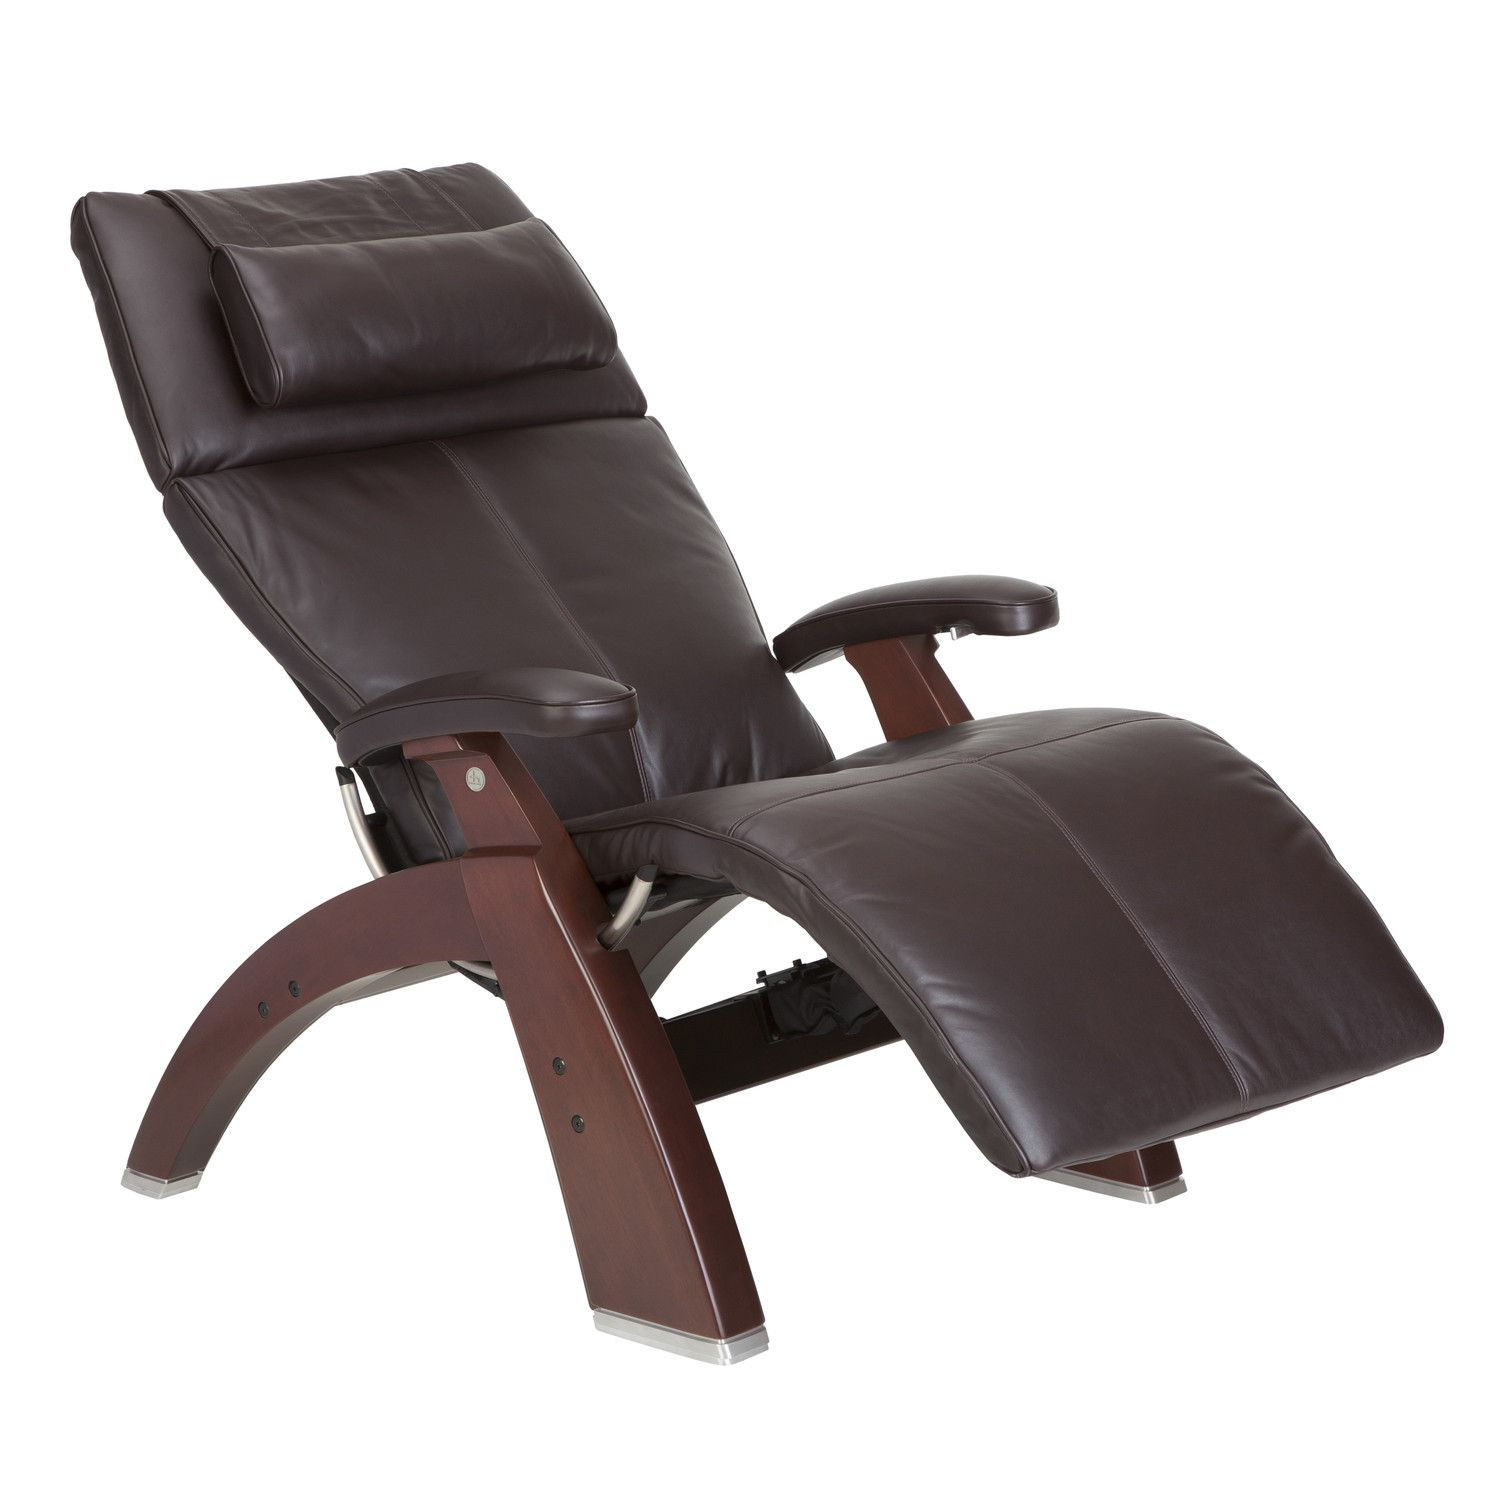 Furniture Modern Human Touch Perfect Chair Silhouette Zero Gravity Recliner Chairs With Dark Brown L Perfect Chair Modern Recliner Chairs Zero Gravity Recliner